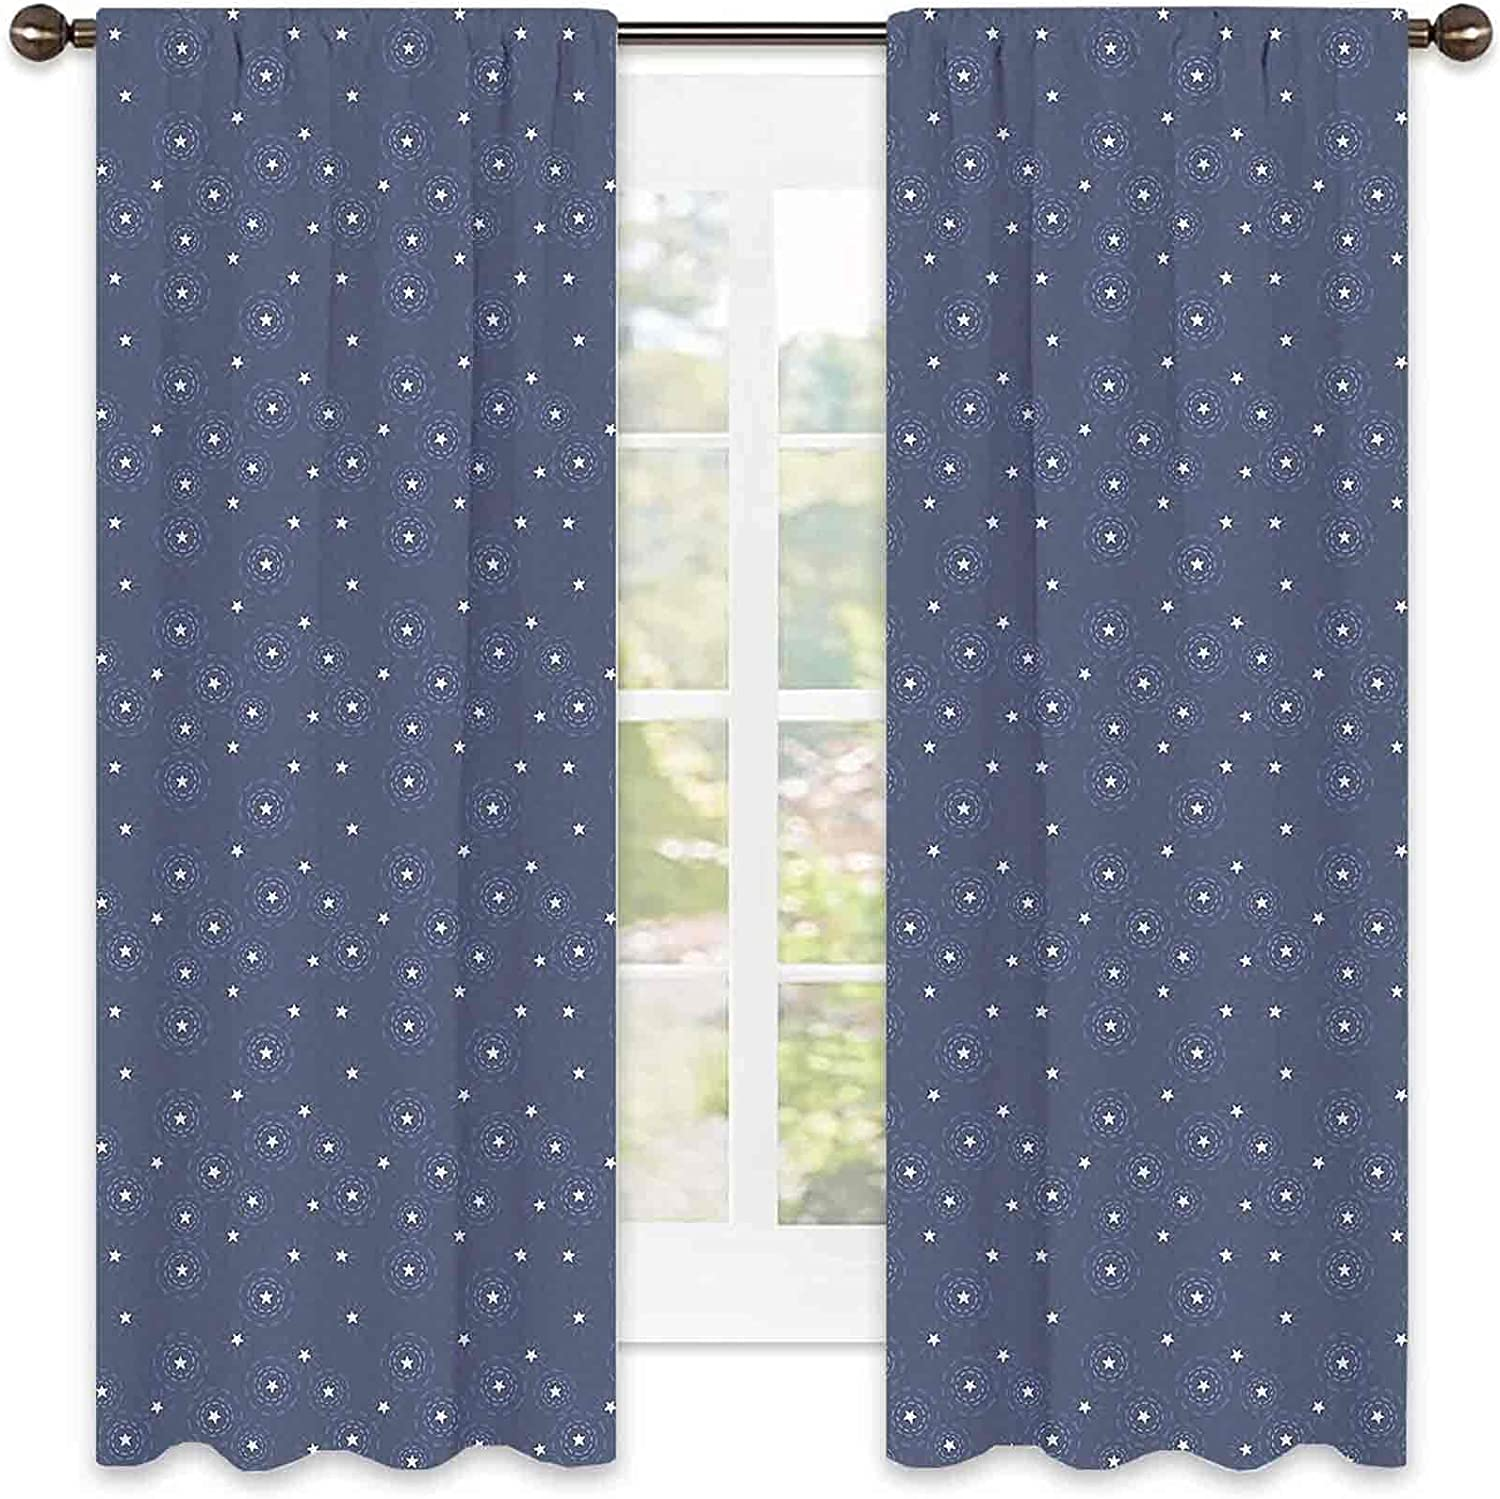 Navy Very popular Blue Heat Insulation Curtain Summer Ranking TOP4 Messy Sky L Night with